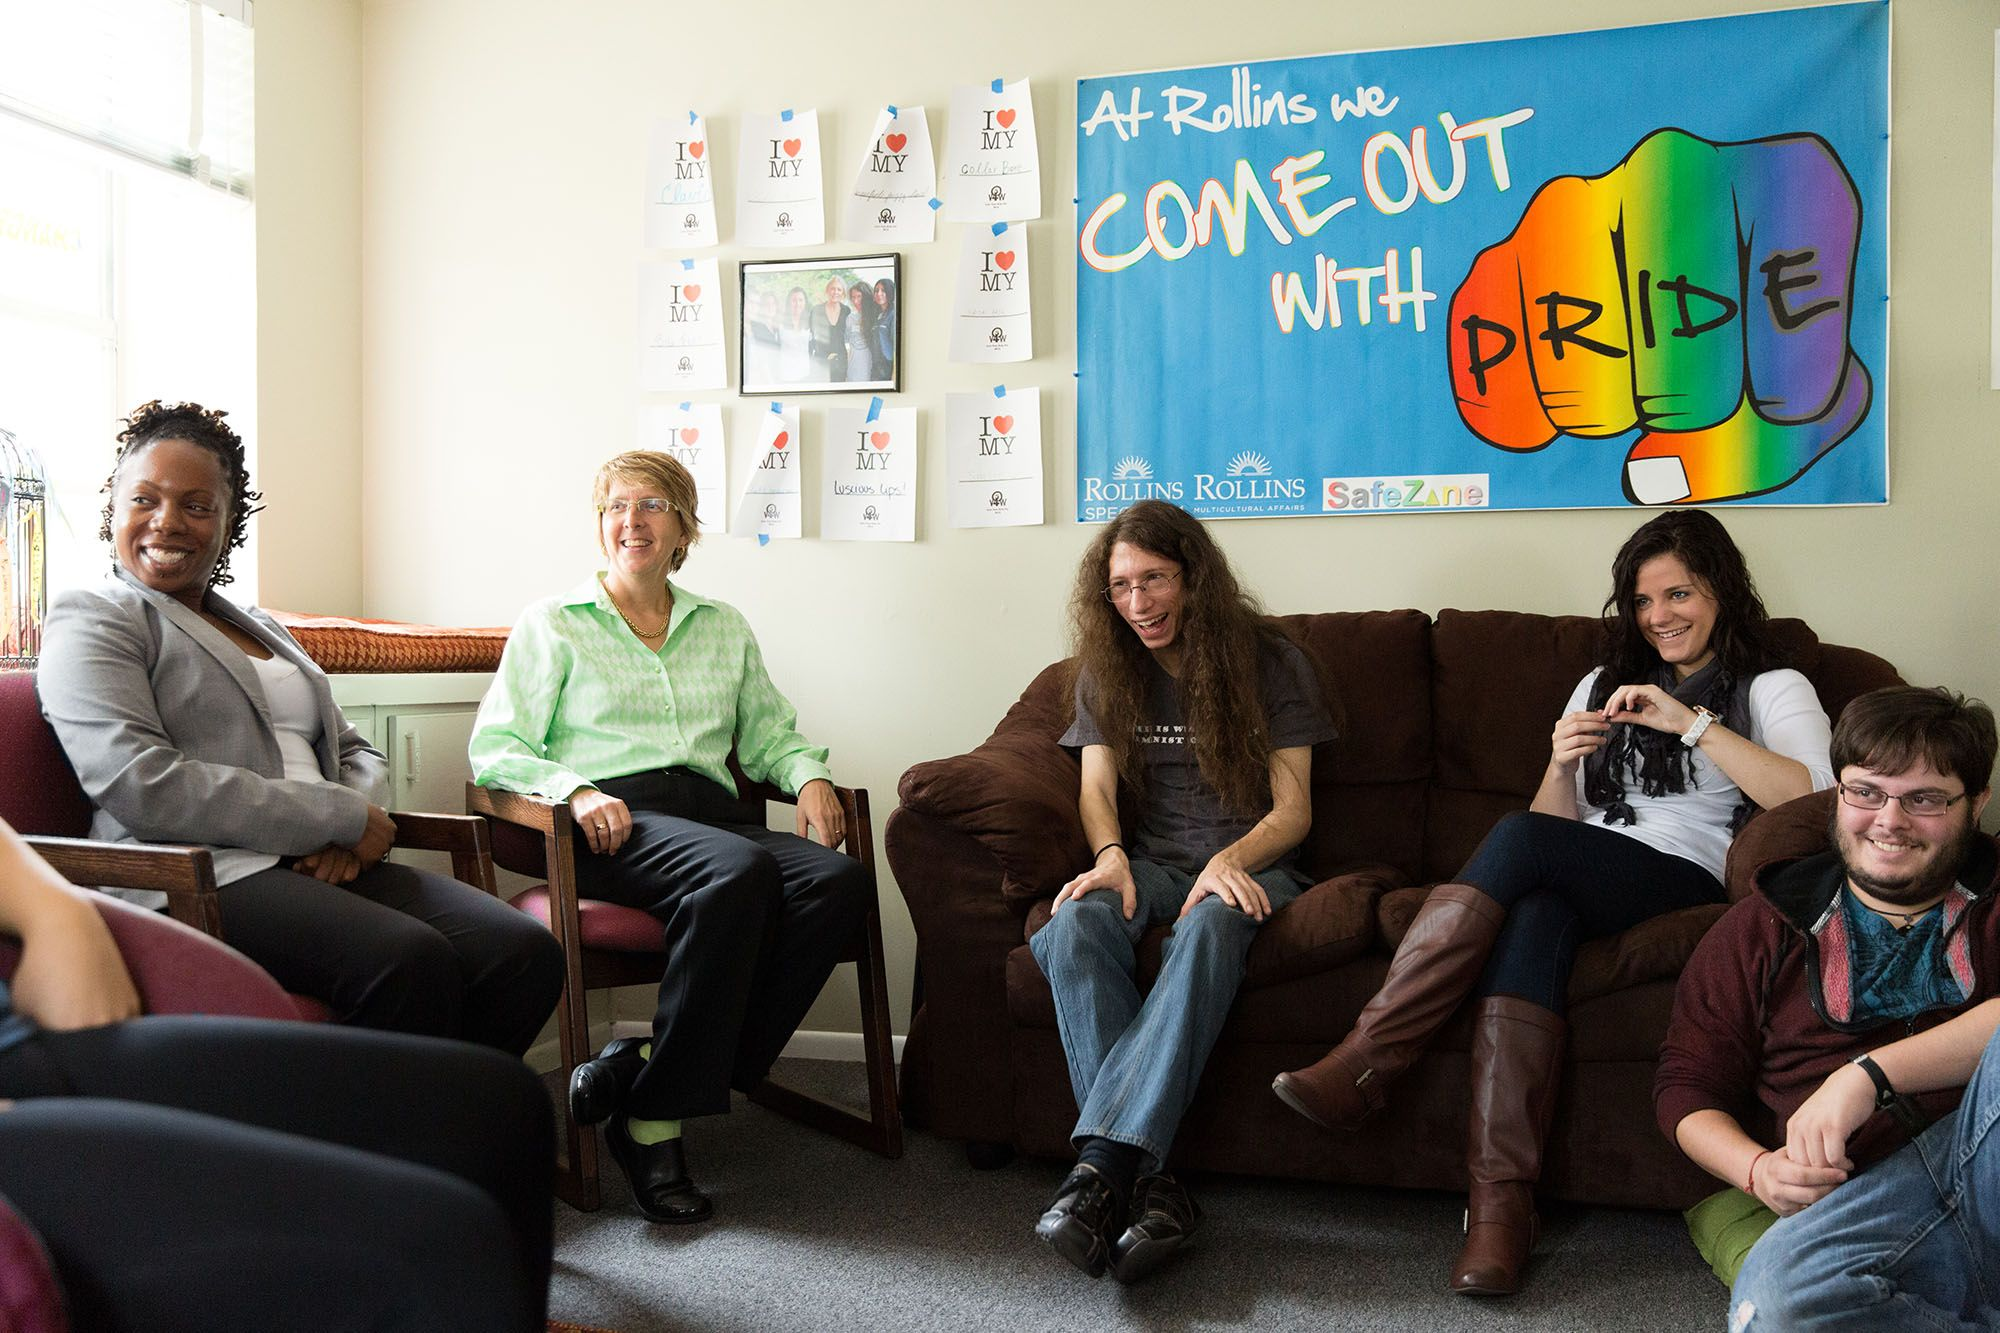 Students engage in discussion about LGBTQ rights at Rollins' Lucy Cross Center.